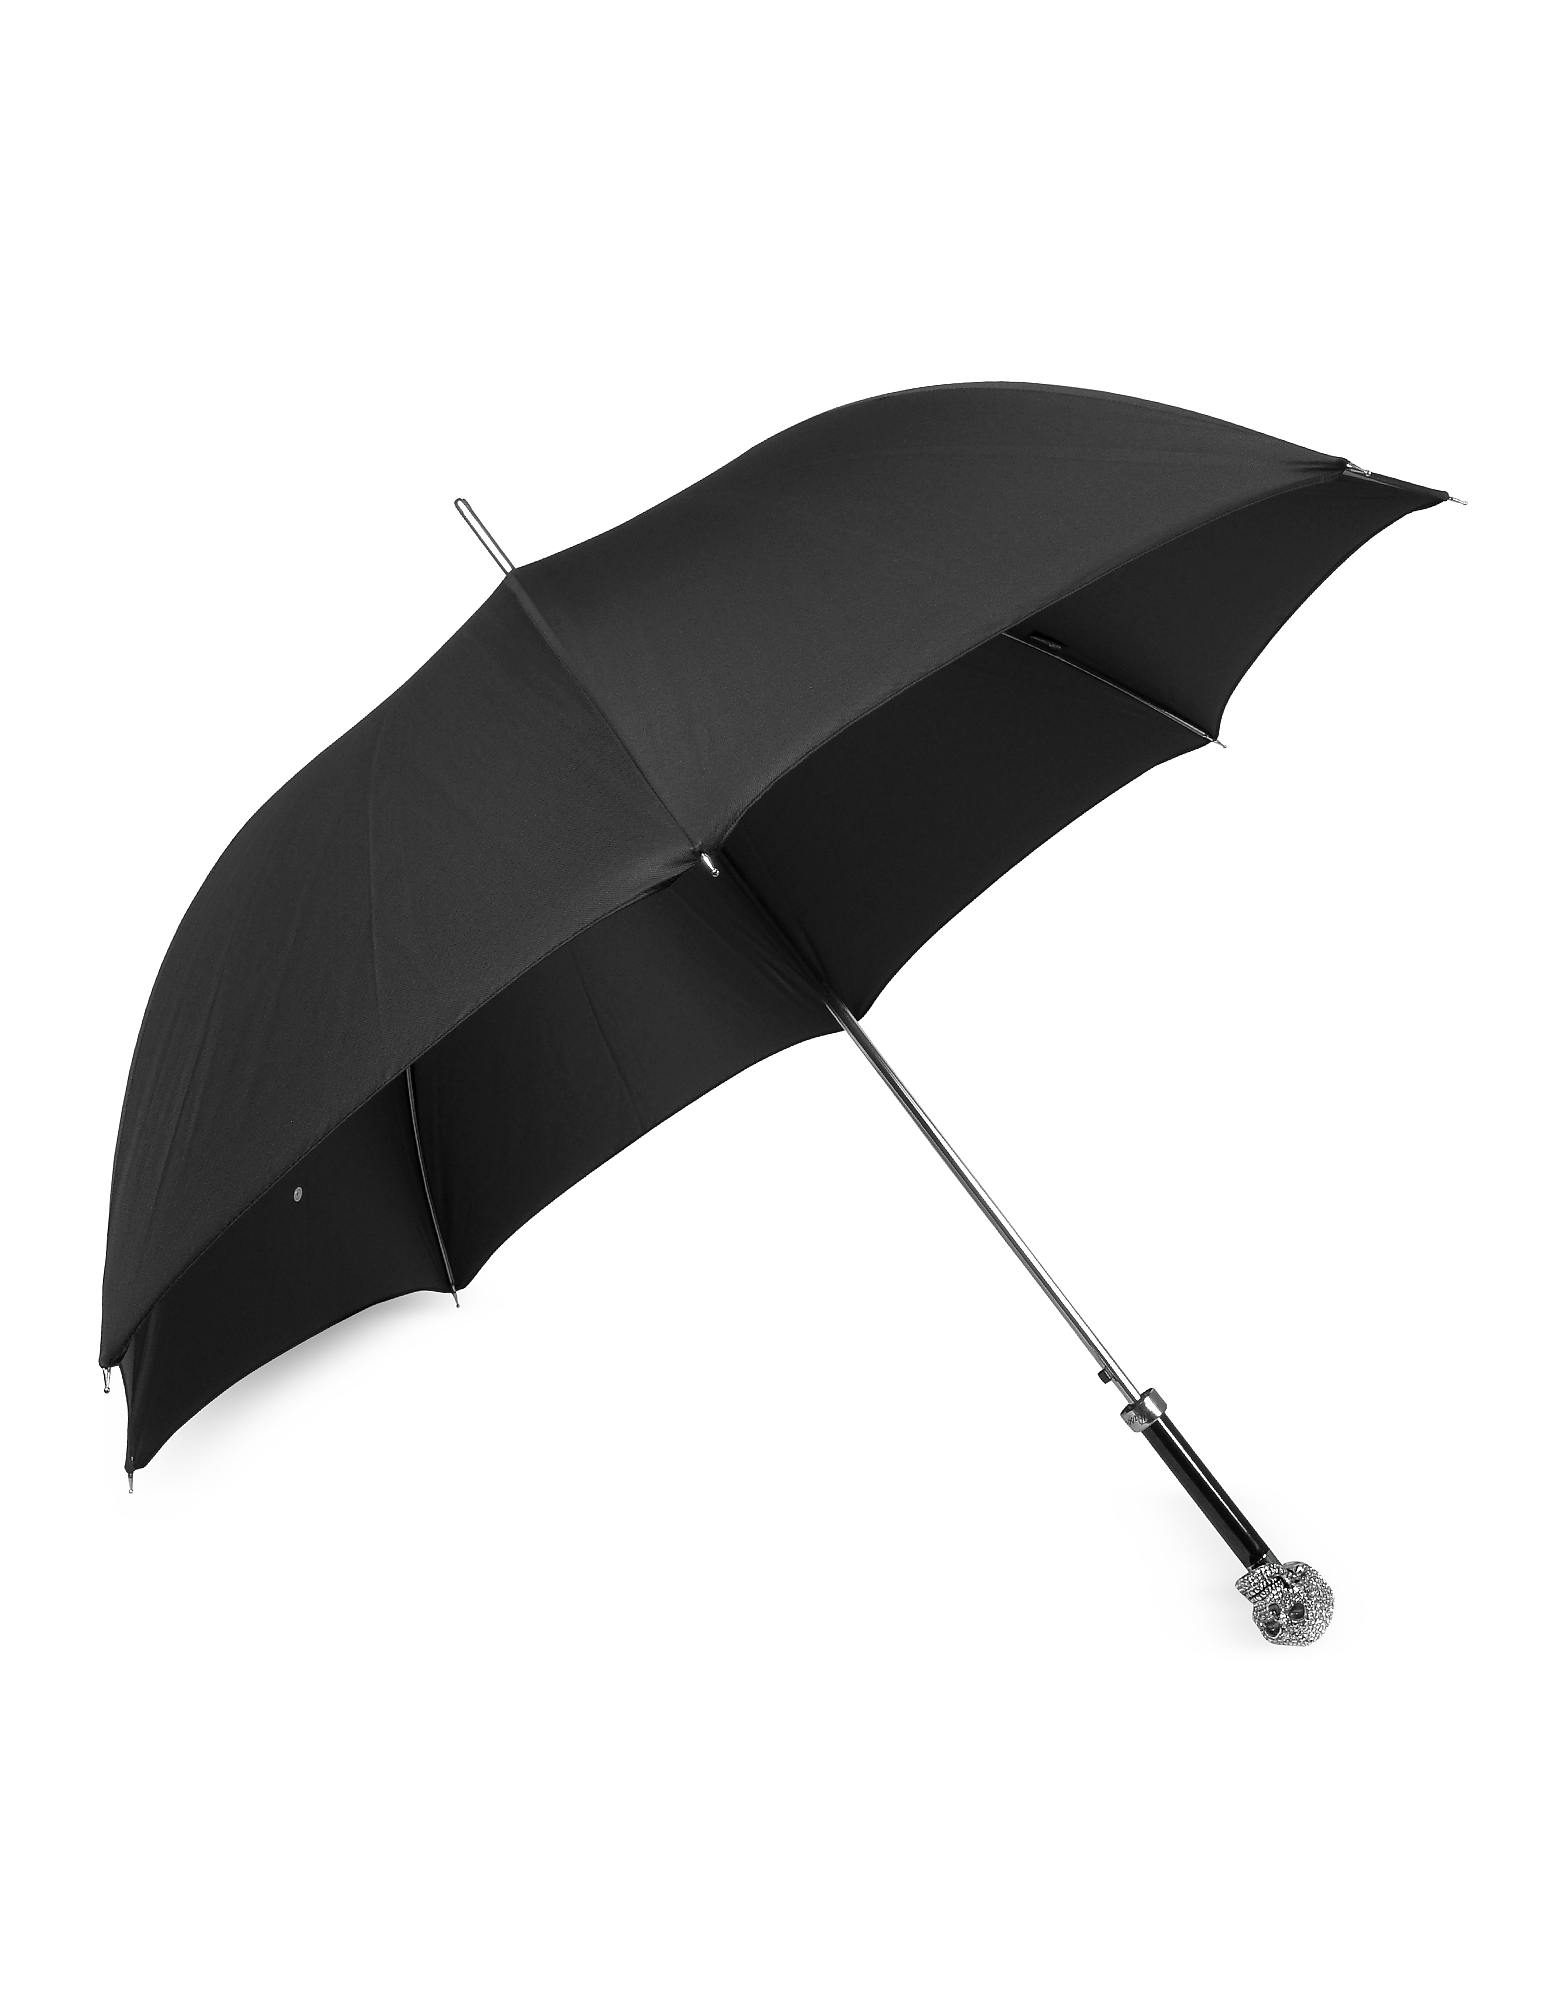 Black Women's Umbrella w/Swarovski Crystals Silvertone Skull Handle от Forzieri.com INT